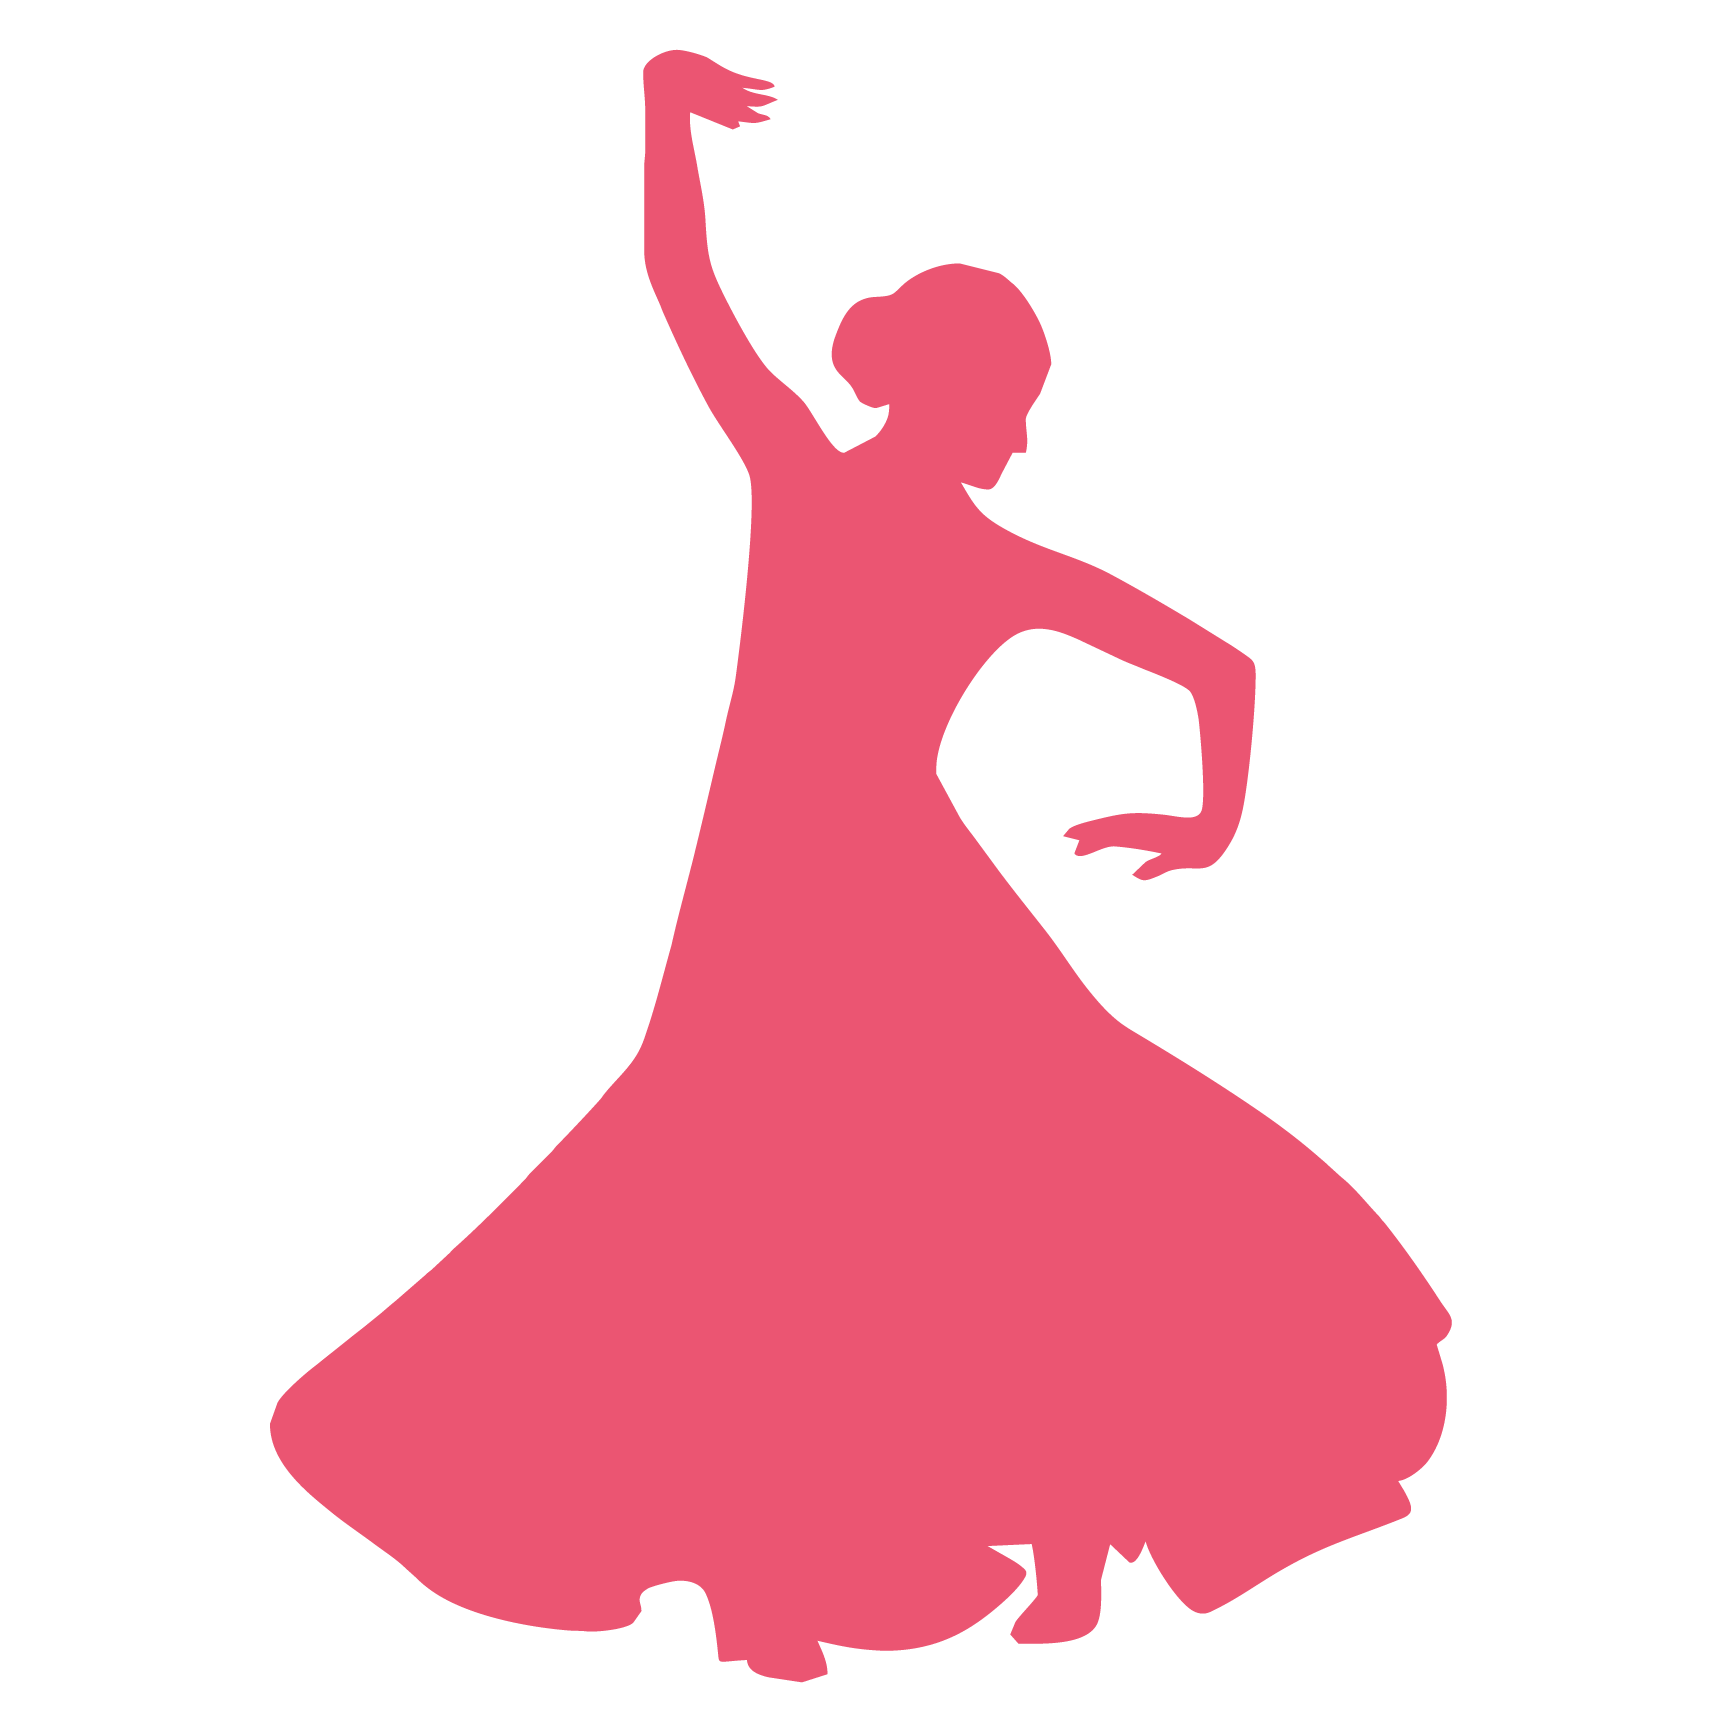 Dance clipart bollywood dance. Event management company in